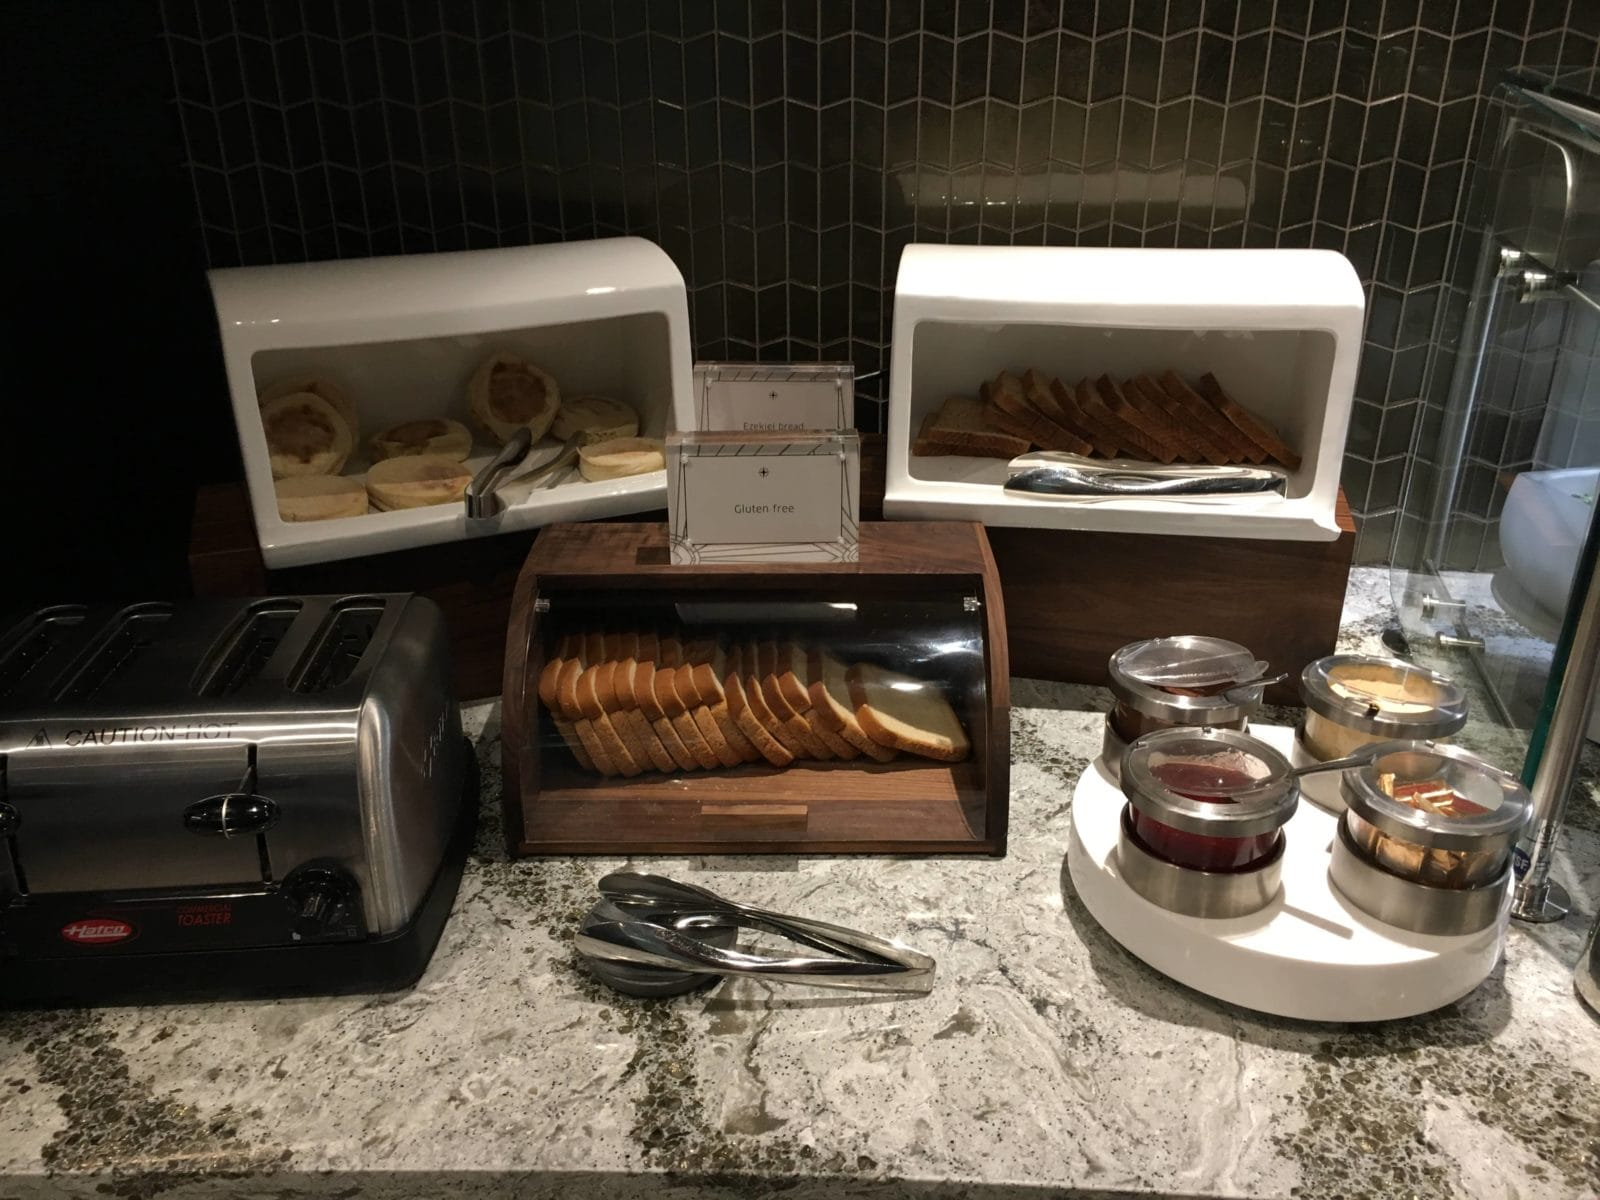 United Polaris Lounge LAX - Brotstation